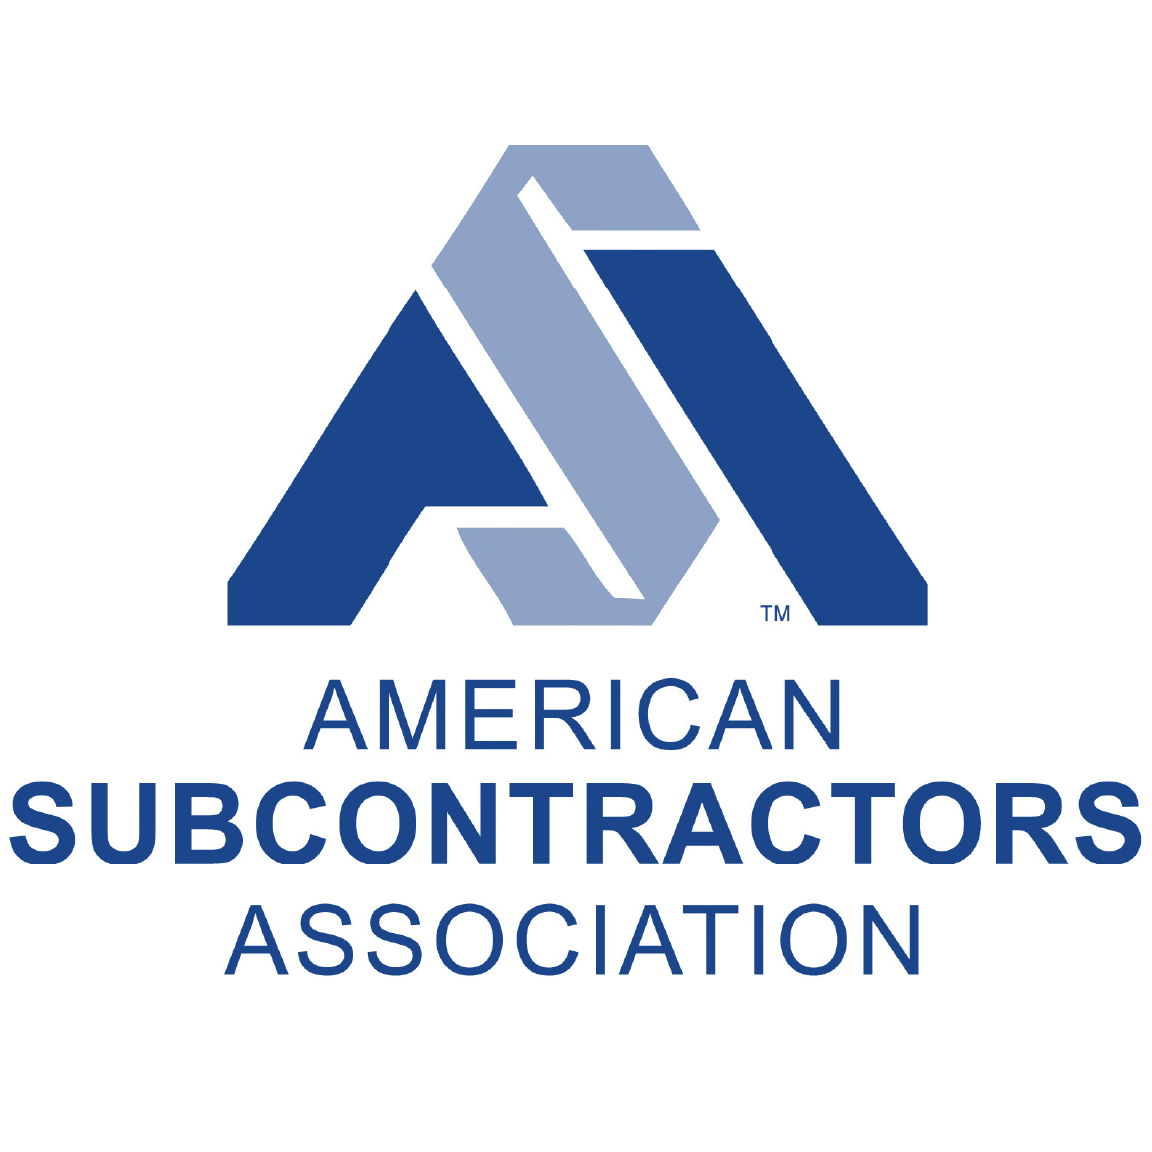 American Subcontractors Association membership badge